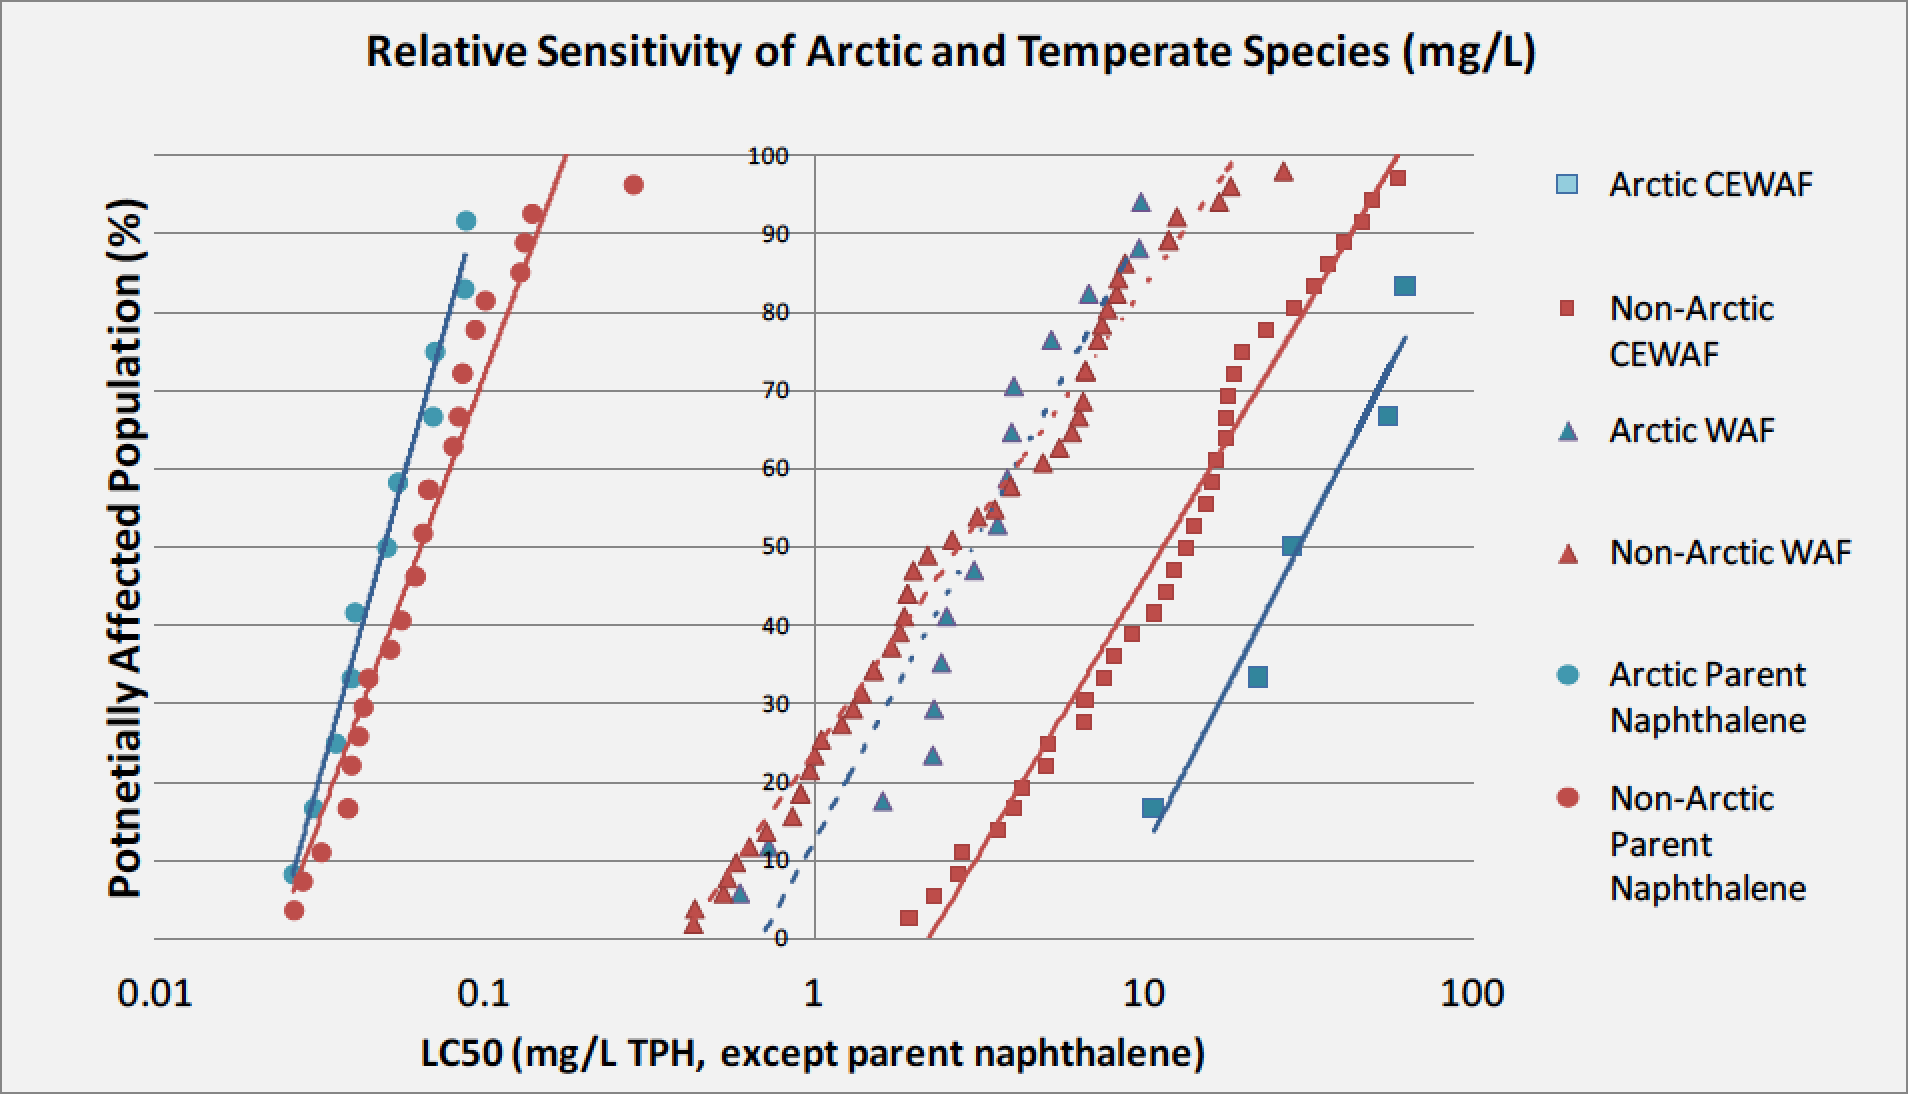 Figure 6-3. The relative sensitivity of arctic and temperate species to naphthalene, WAF, and CEWAF exposures (Word and Gardiner, in prep)